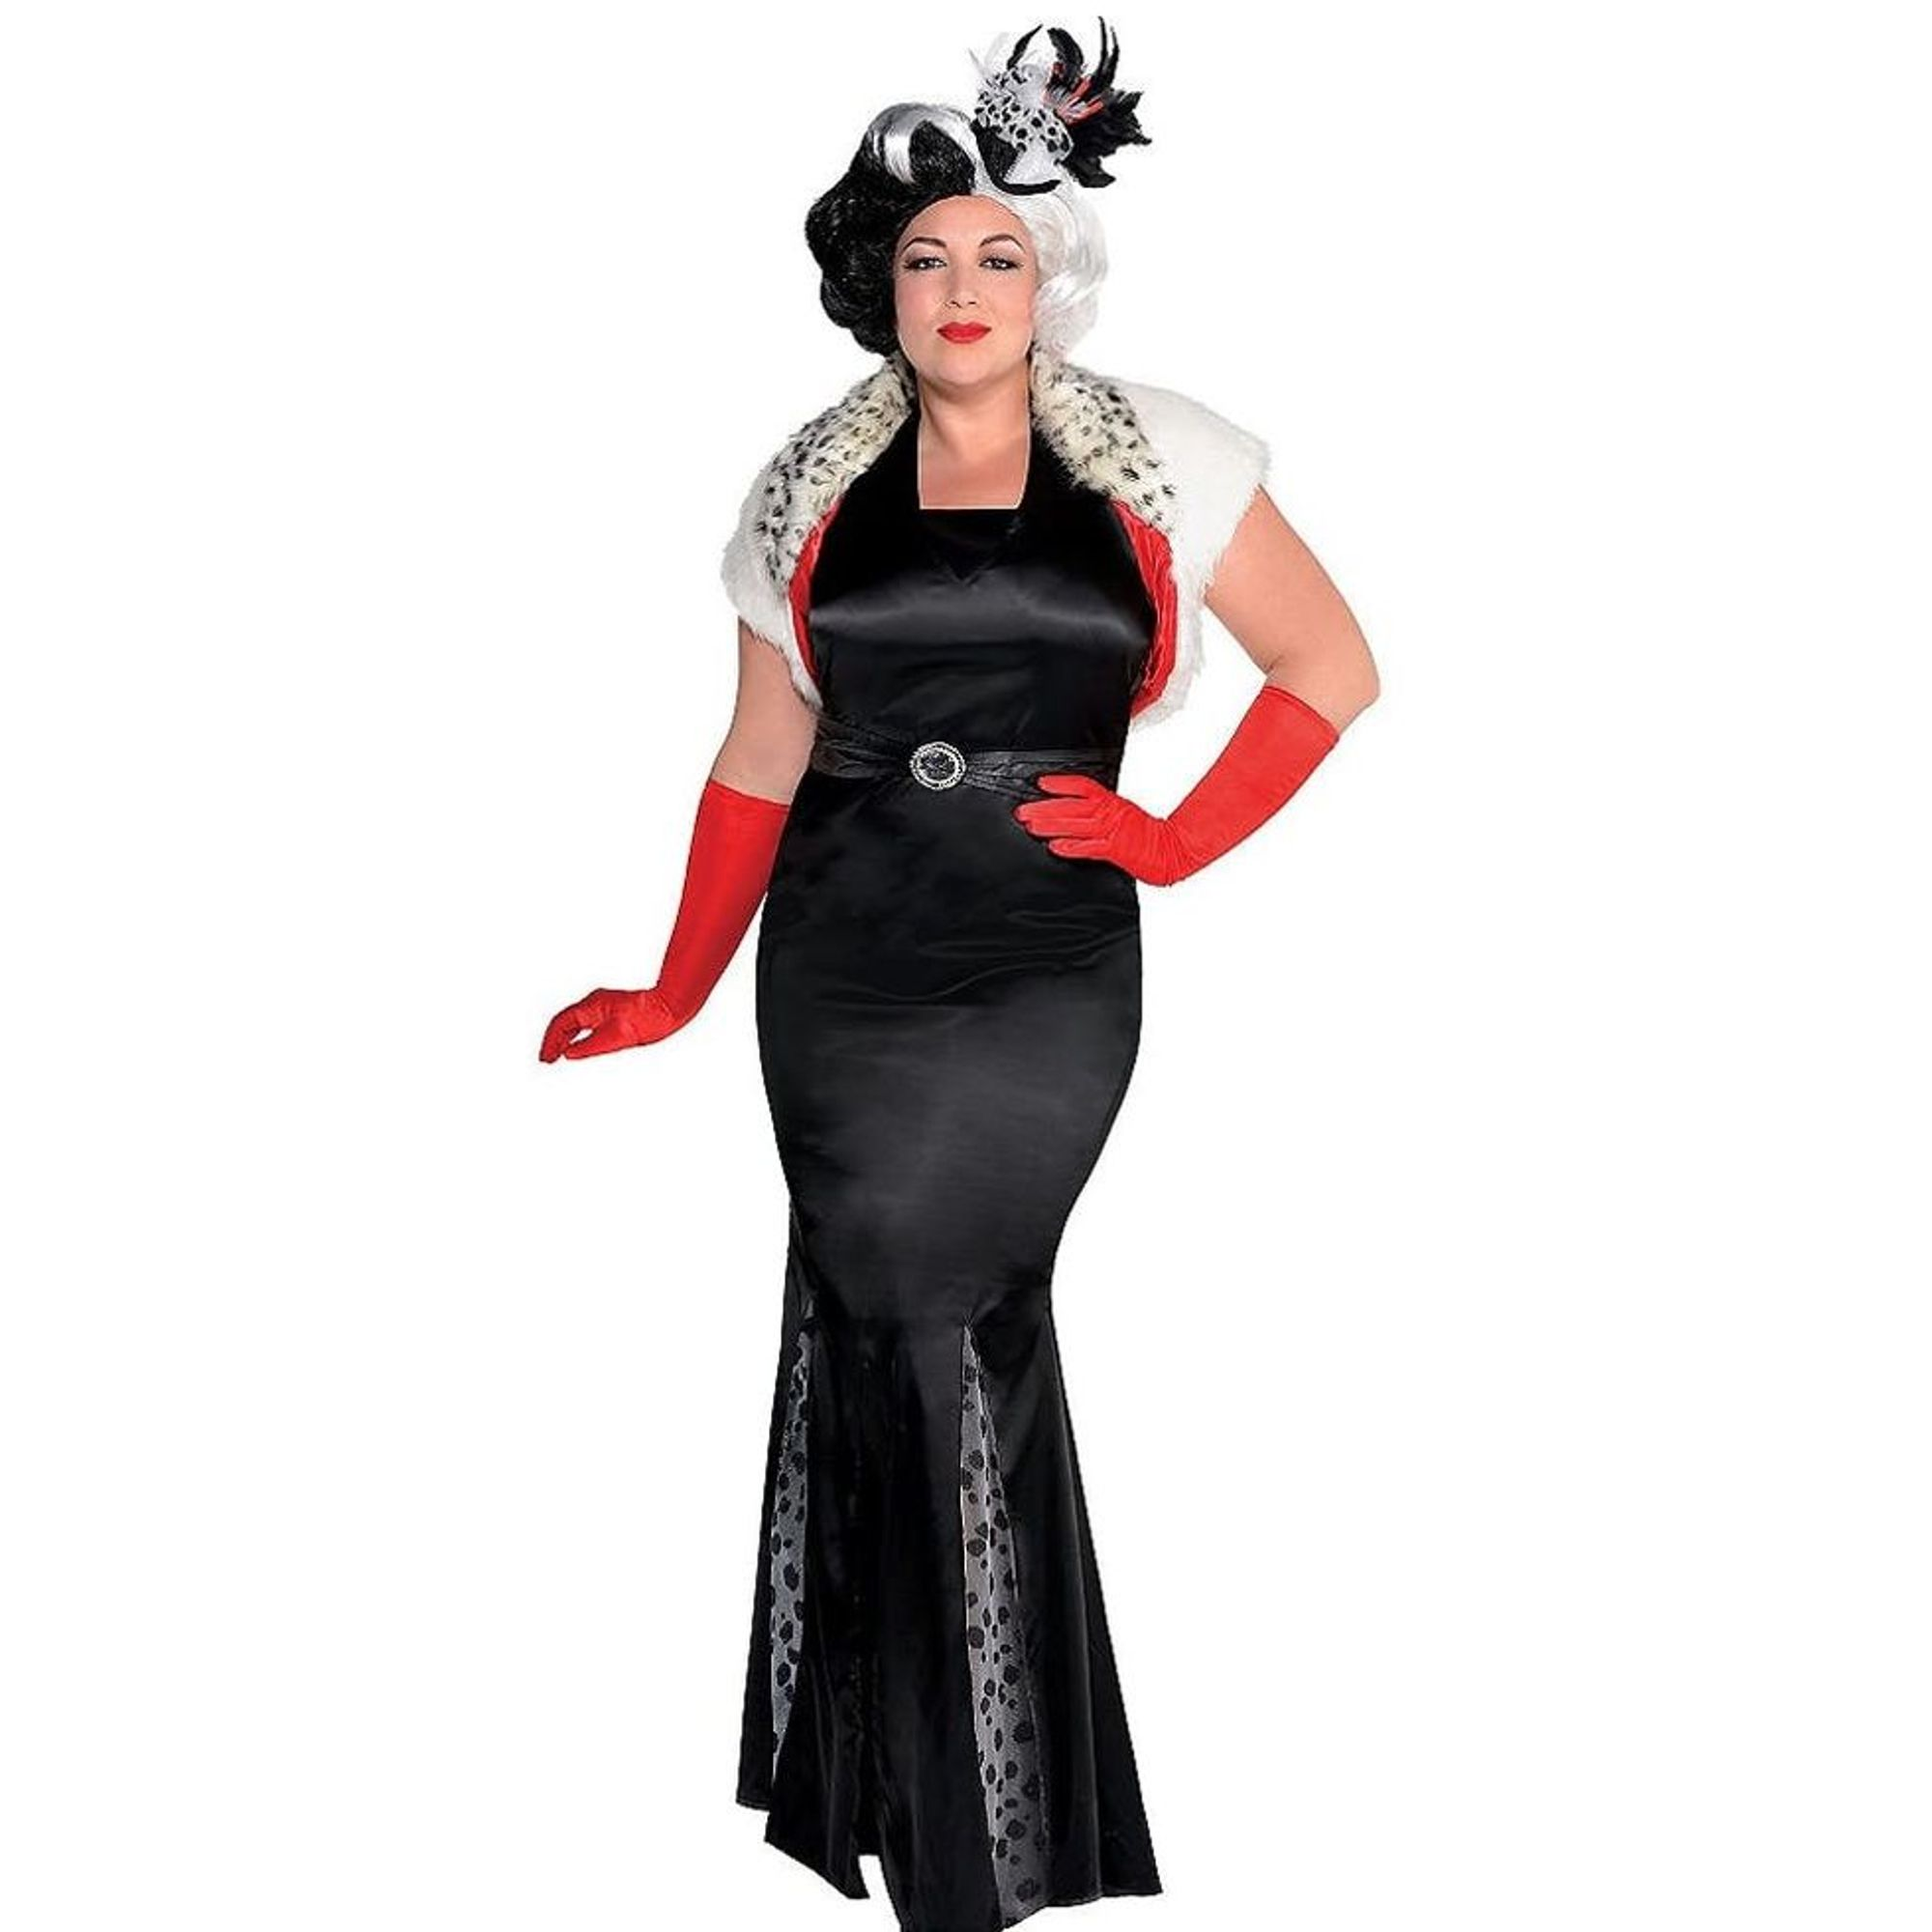 40 Plus Size Halloween Costume Ideas To Complement Your Curves Brit Co